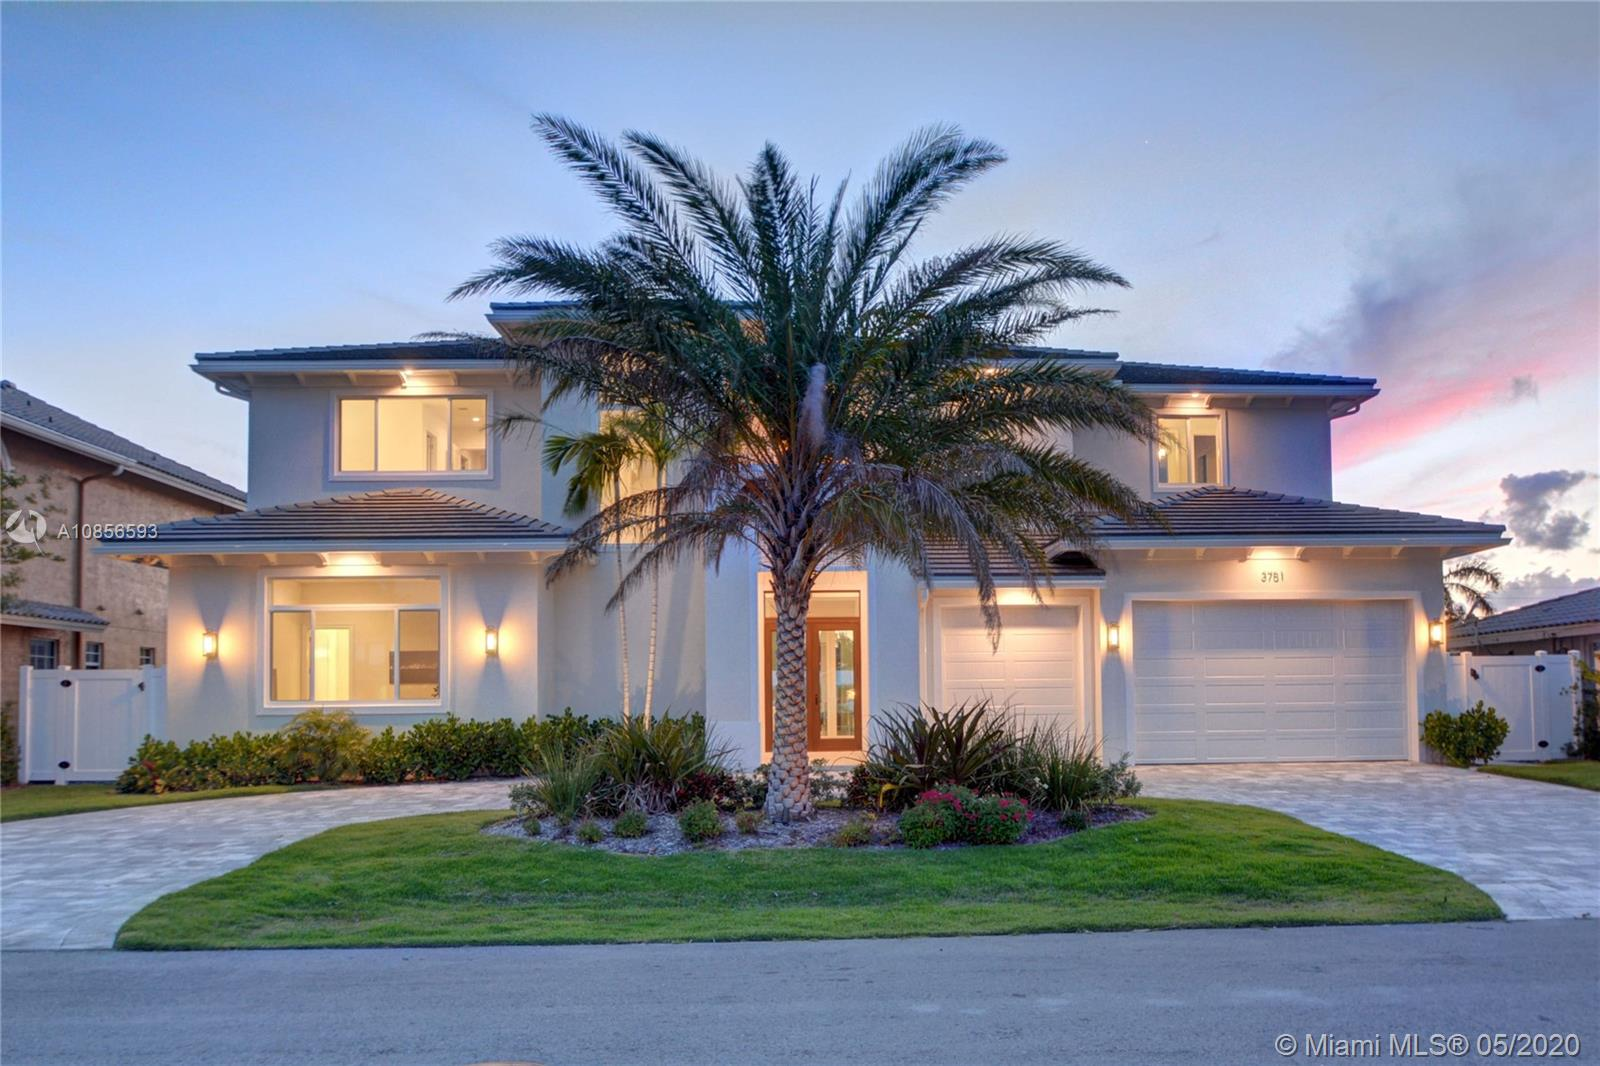 Beautiful coastal-inspired estate in highly desired Lighthouse Point. This 2017 built and meticulously designed 5 bedroom, 6 bathroom home impresses with a bright open floor plan and uncompromising quality and craftsmanship. Gorgeous open space kitchen with high-end appliances, custom cabinetry, pantry and more. Living room features breathtaking full-width floor-to-ceiling sliding glass doors leading to an expansive loggia with integrated summer kitchen and a resort-like pool with sun shelf entry. Luxurious oversized master suite with panoramic pool and water views. A boaters dream with new full-service yacht dock, minutes to Hillsboro Inlet. This is the perfect home for living and entertaining in style.